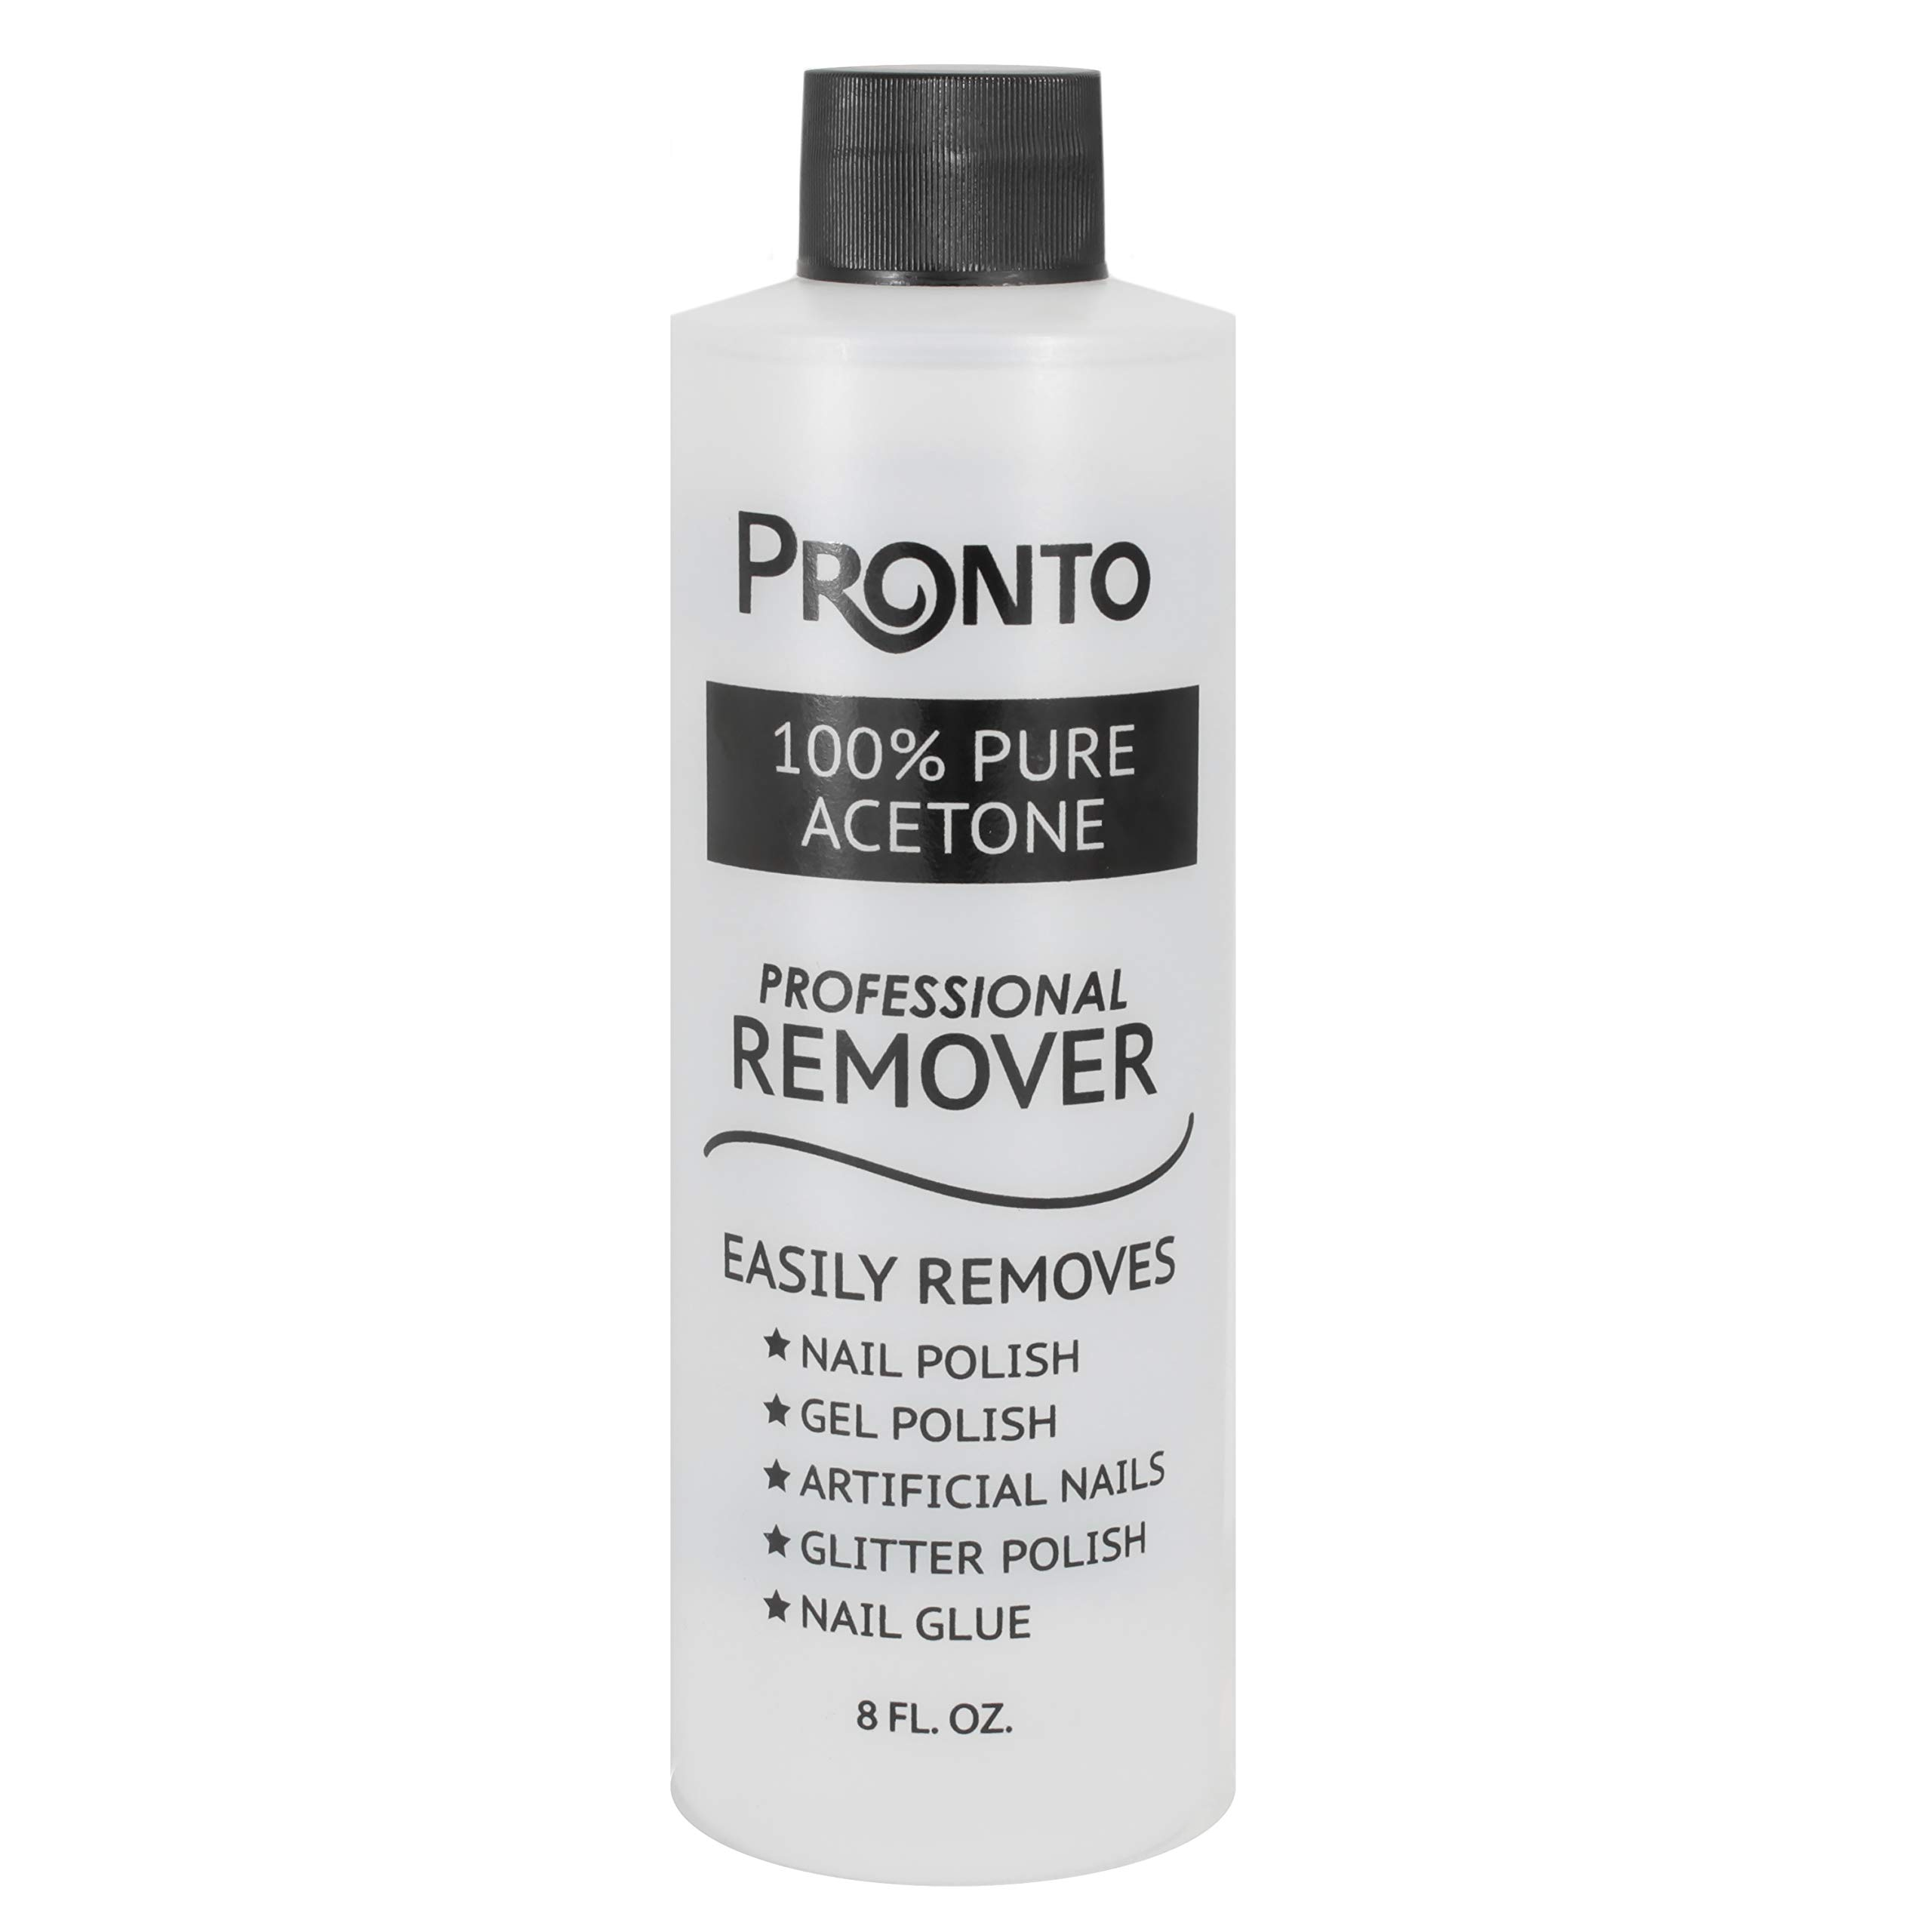 Pronto 100% Pure Acetone - Quick, Professional Nail Polish Remover - for Natural, Gel, Acrylic, Sculptured Nails (8 FL. OZ.)